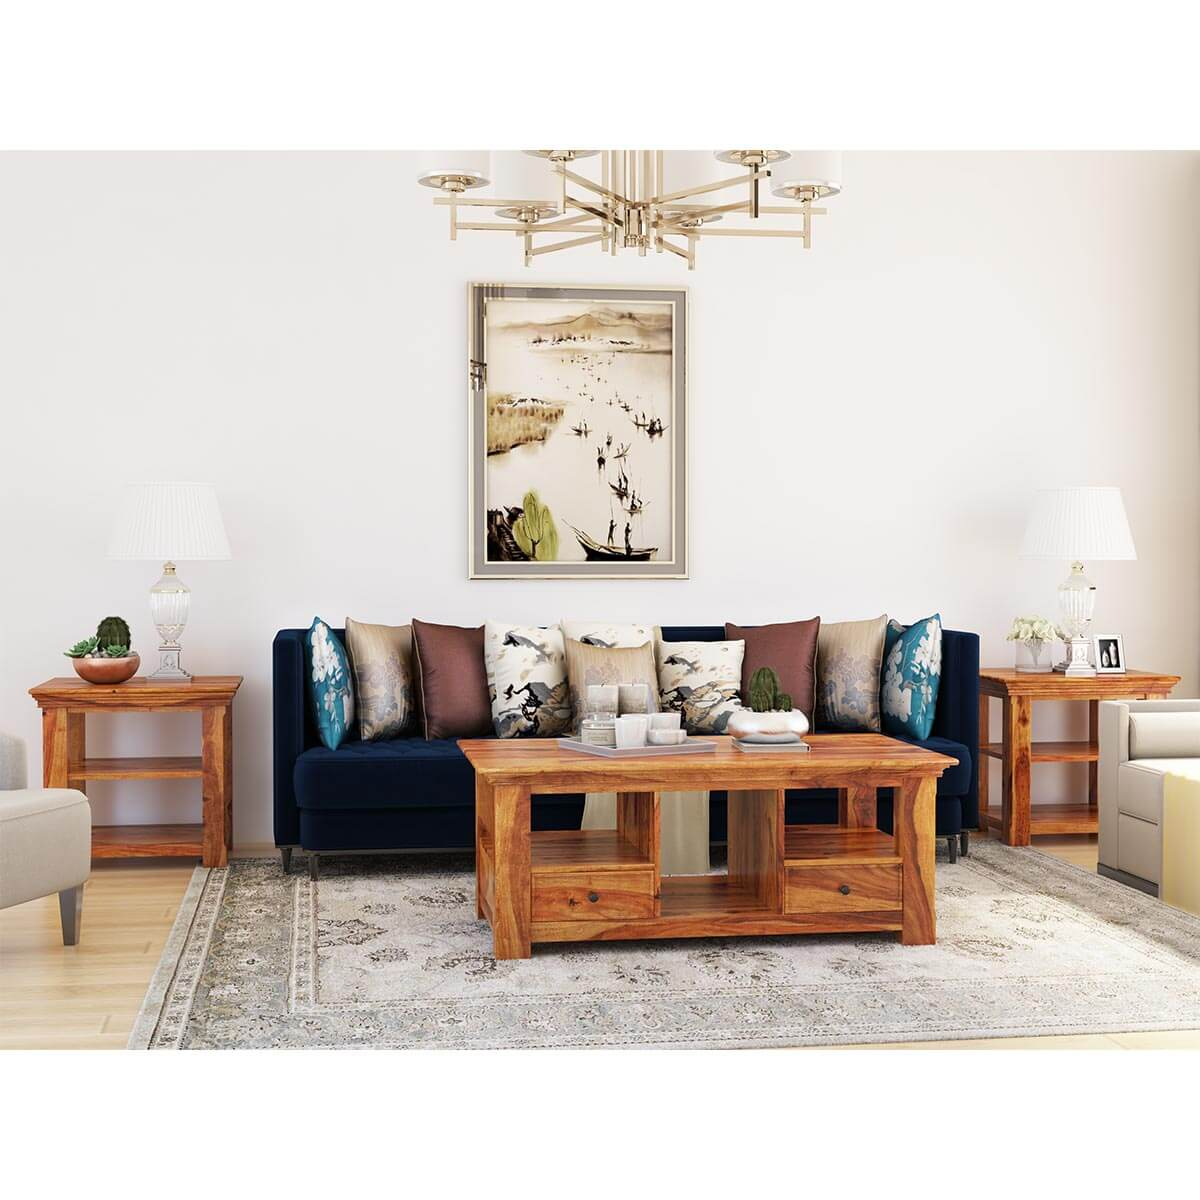 Priscus Midcentury Solid Wood 3 Piece Coffee Table Set